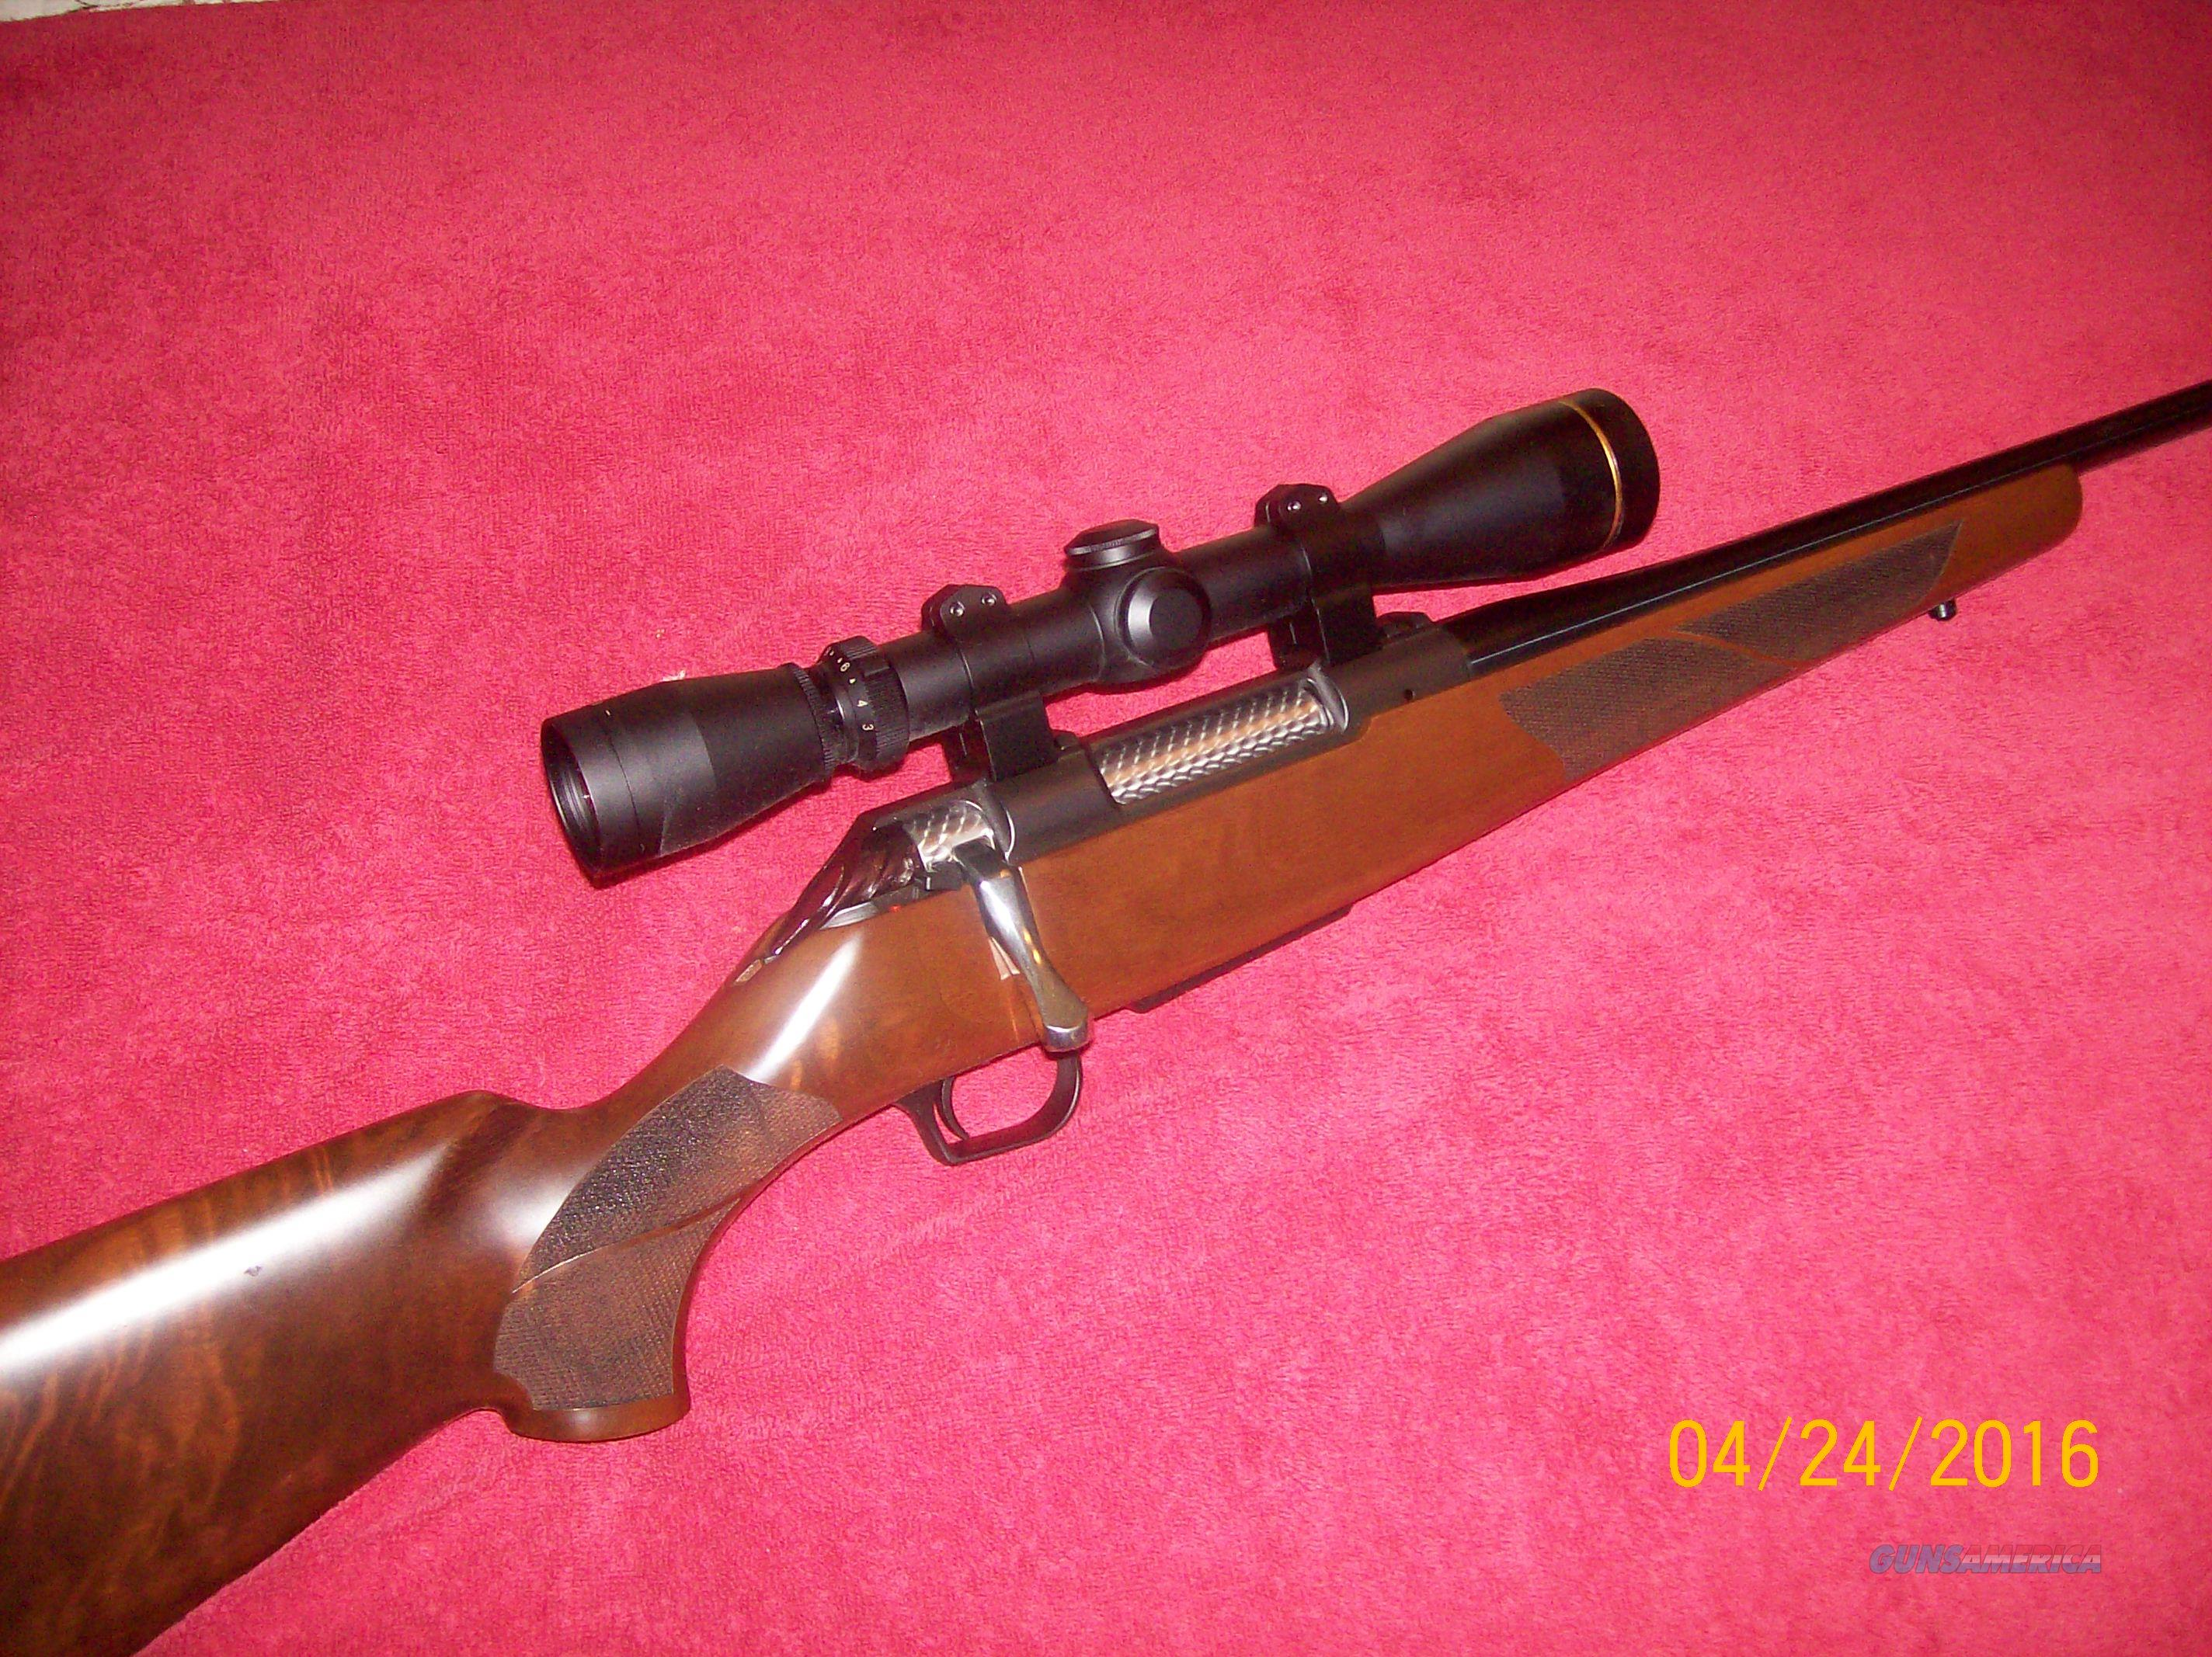 Thompson Center Icon  .243 with Leupold VX-II  3x-9x by 40mm scope in Warne rings   Guns > Rifles > Thompson Center Rifles > Icon